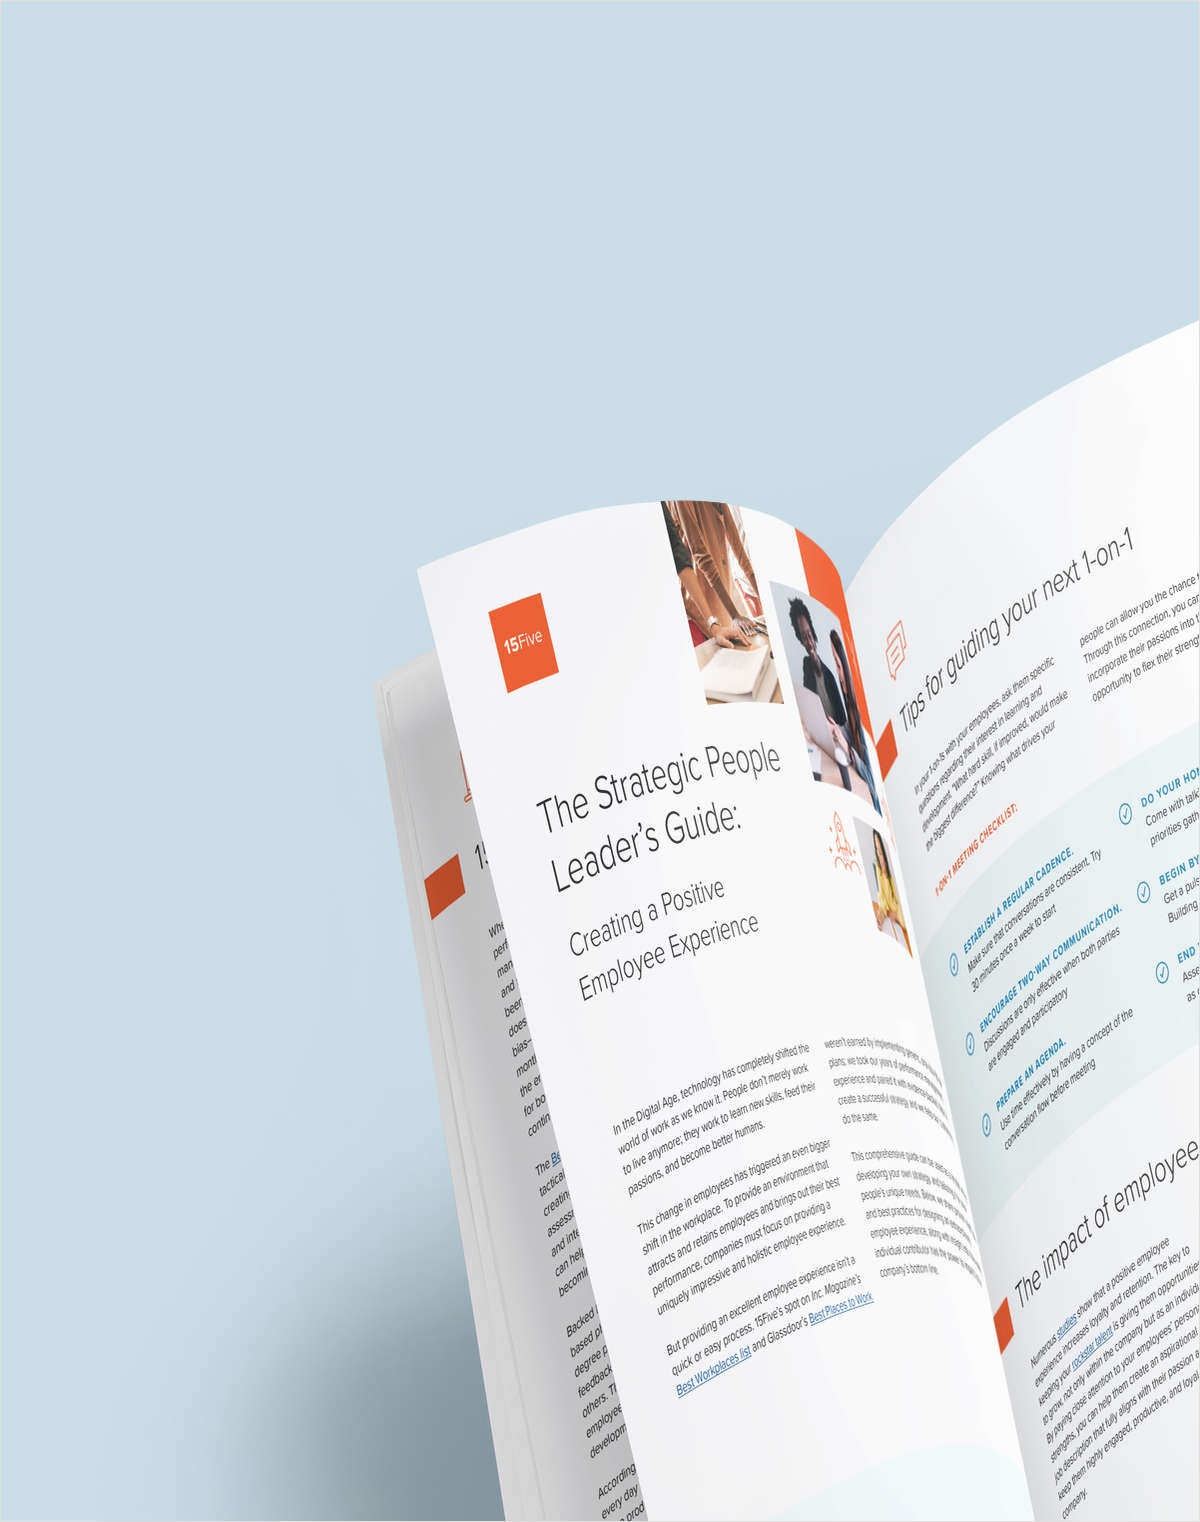 The Strategic People Leader's Guide: Creating a Positive Employee Experience